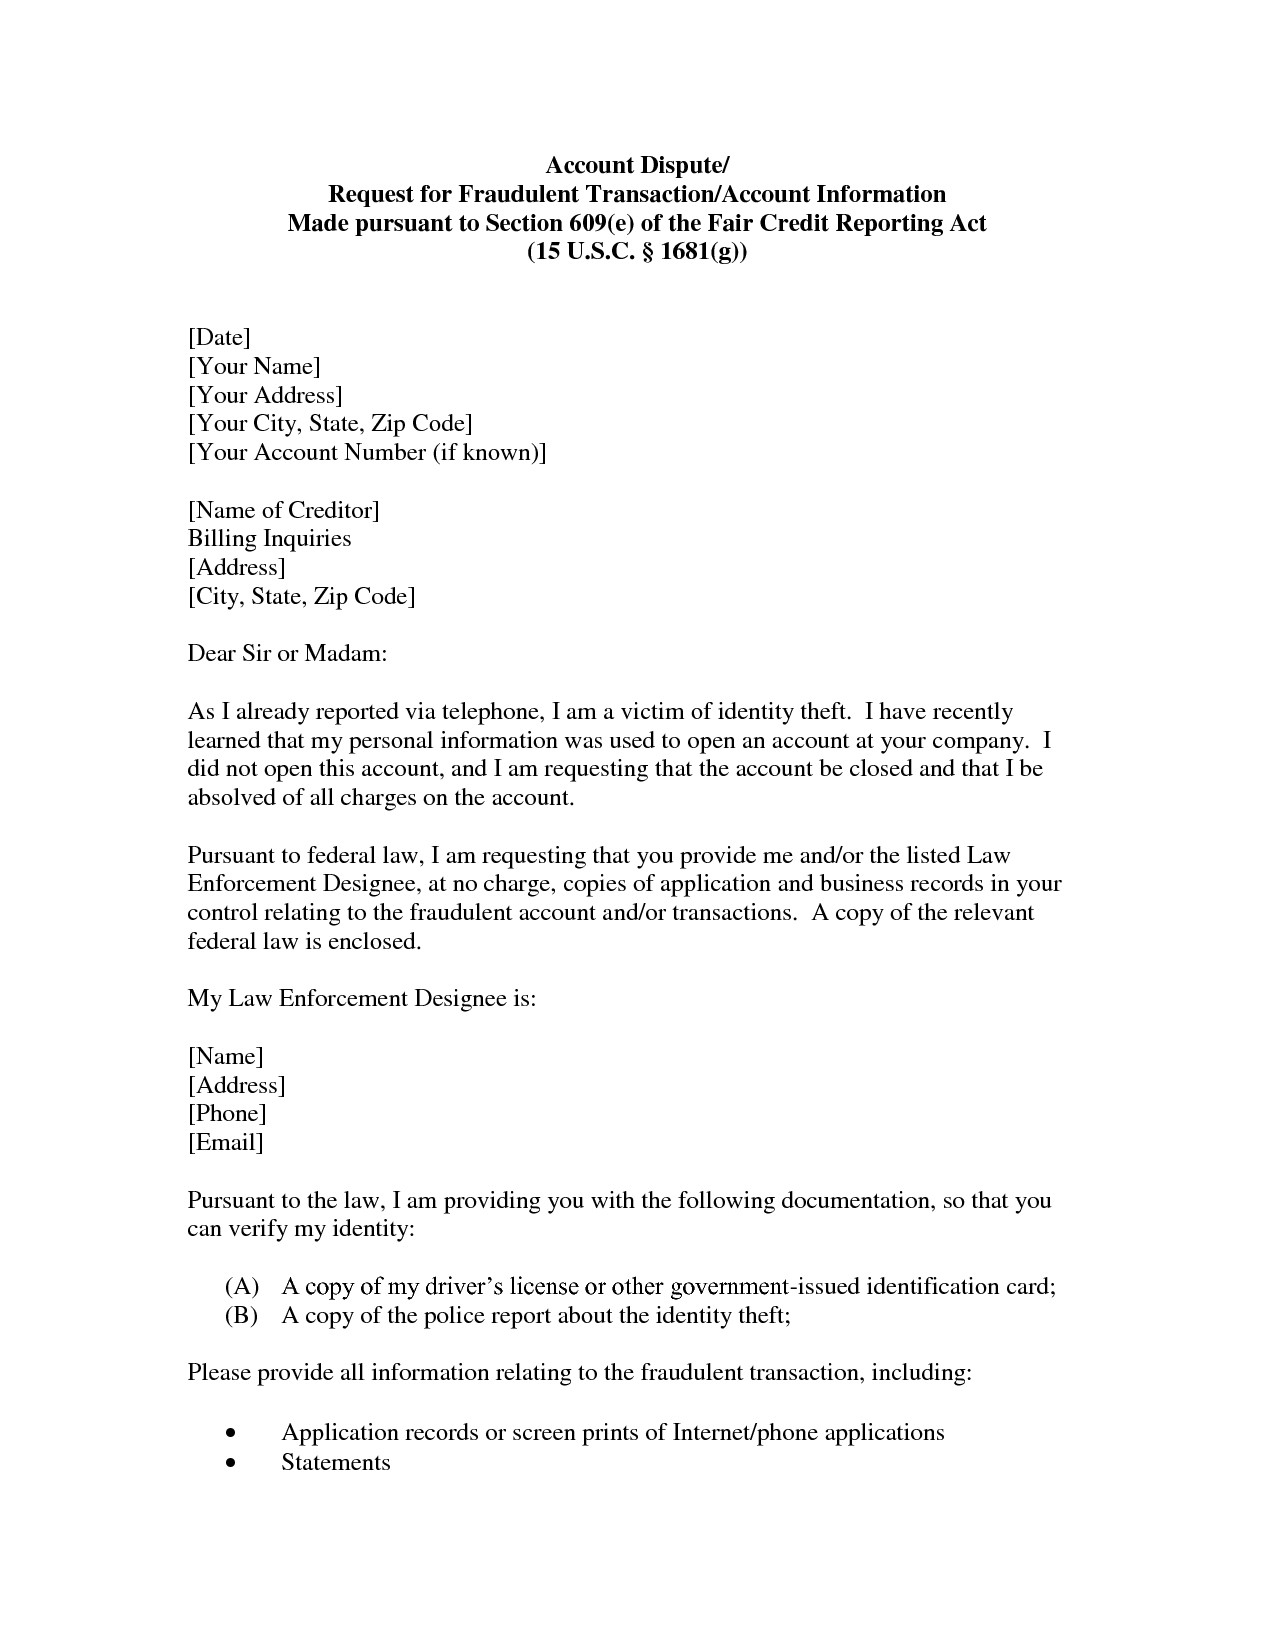 609 letter template pdf example-609 letter template credit dispute letters 18-o